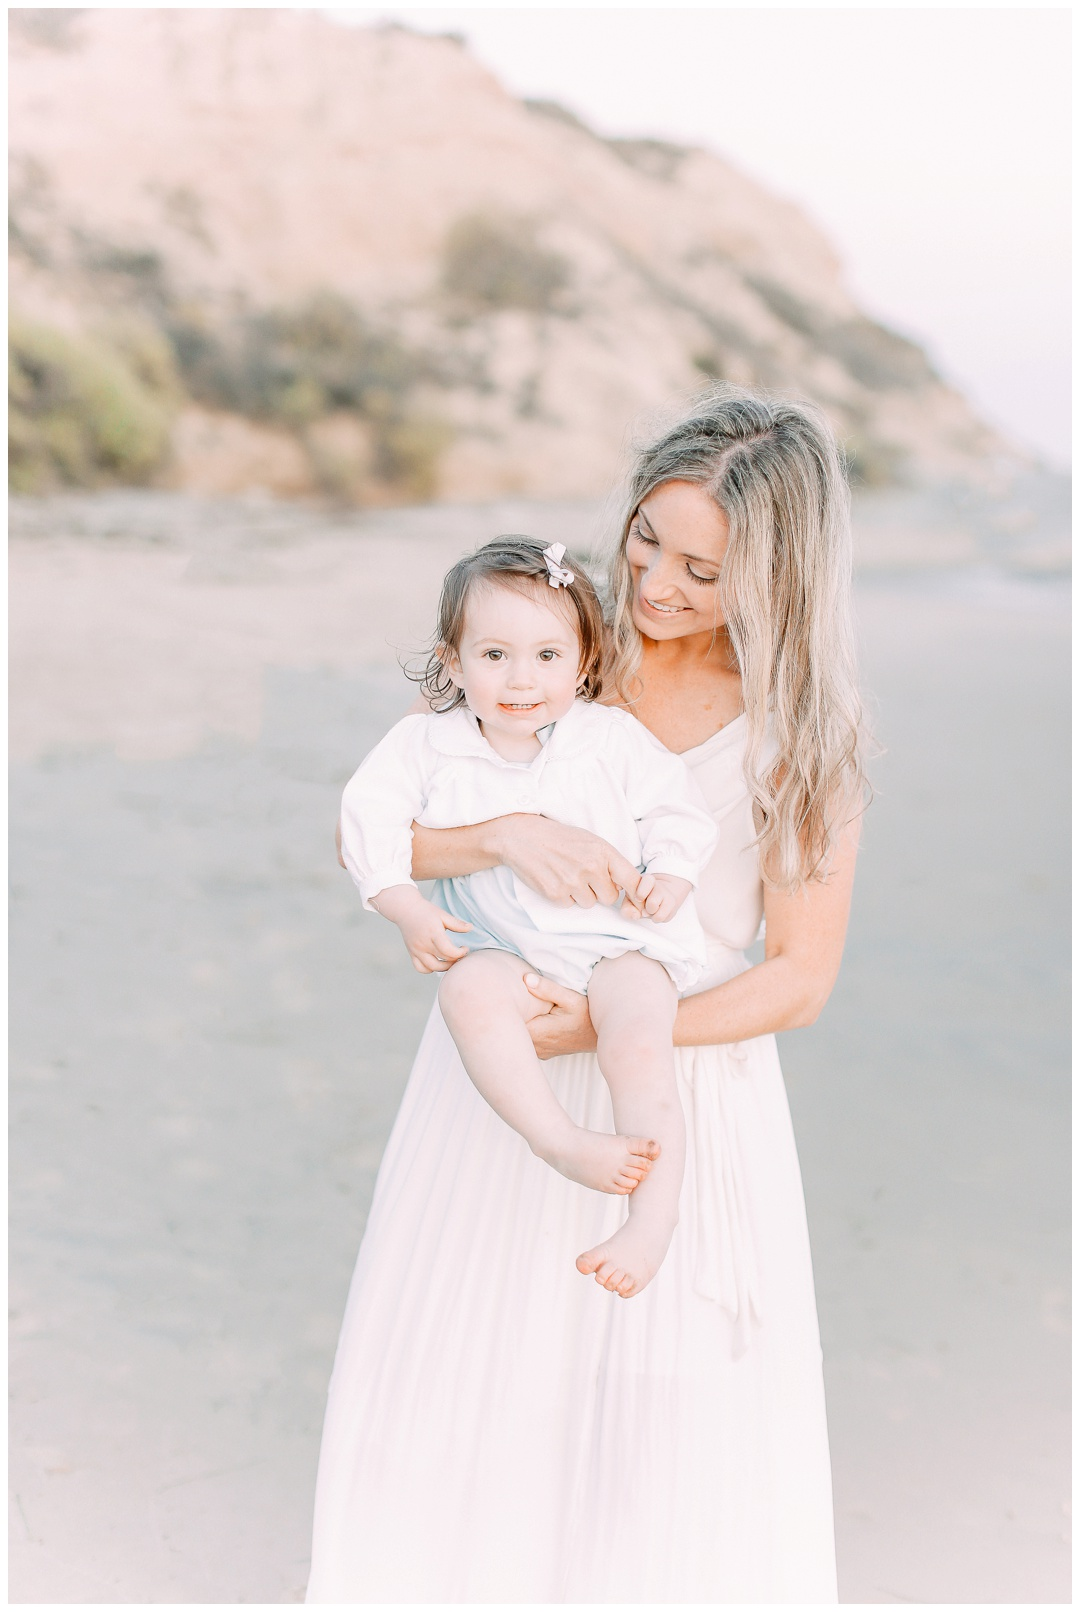 Newport_Beach_Maternity_Photographer_Orange_County_Maternity_Photography_Cori_Kleckner_Photography_Orange_County_Family_Photographer_Beach_Maternity_Session_1160.jpg